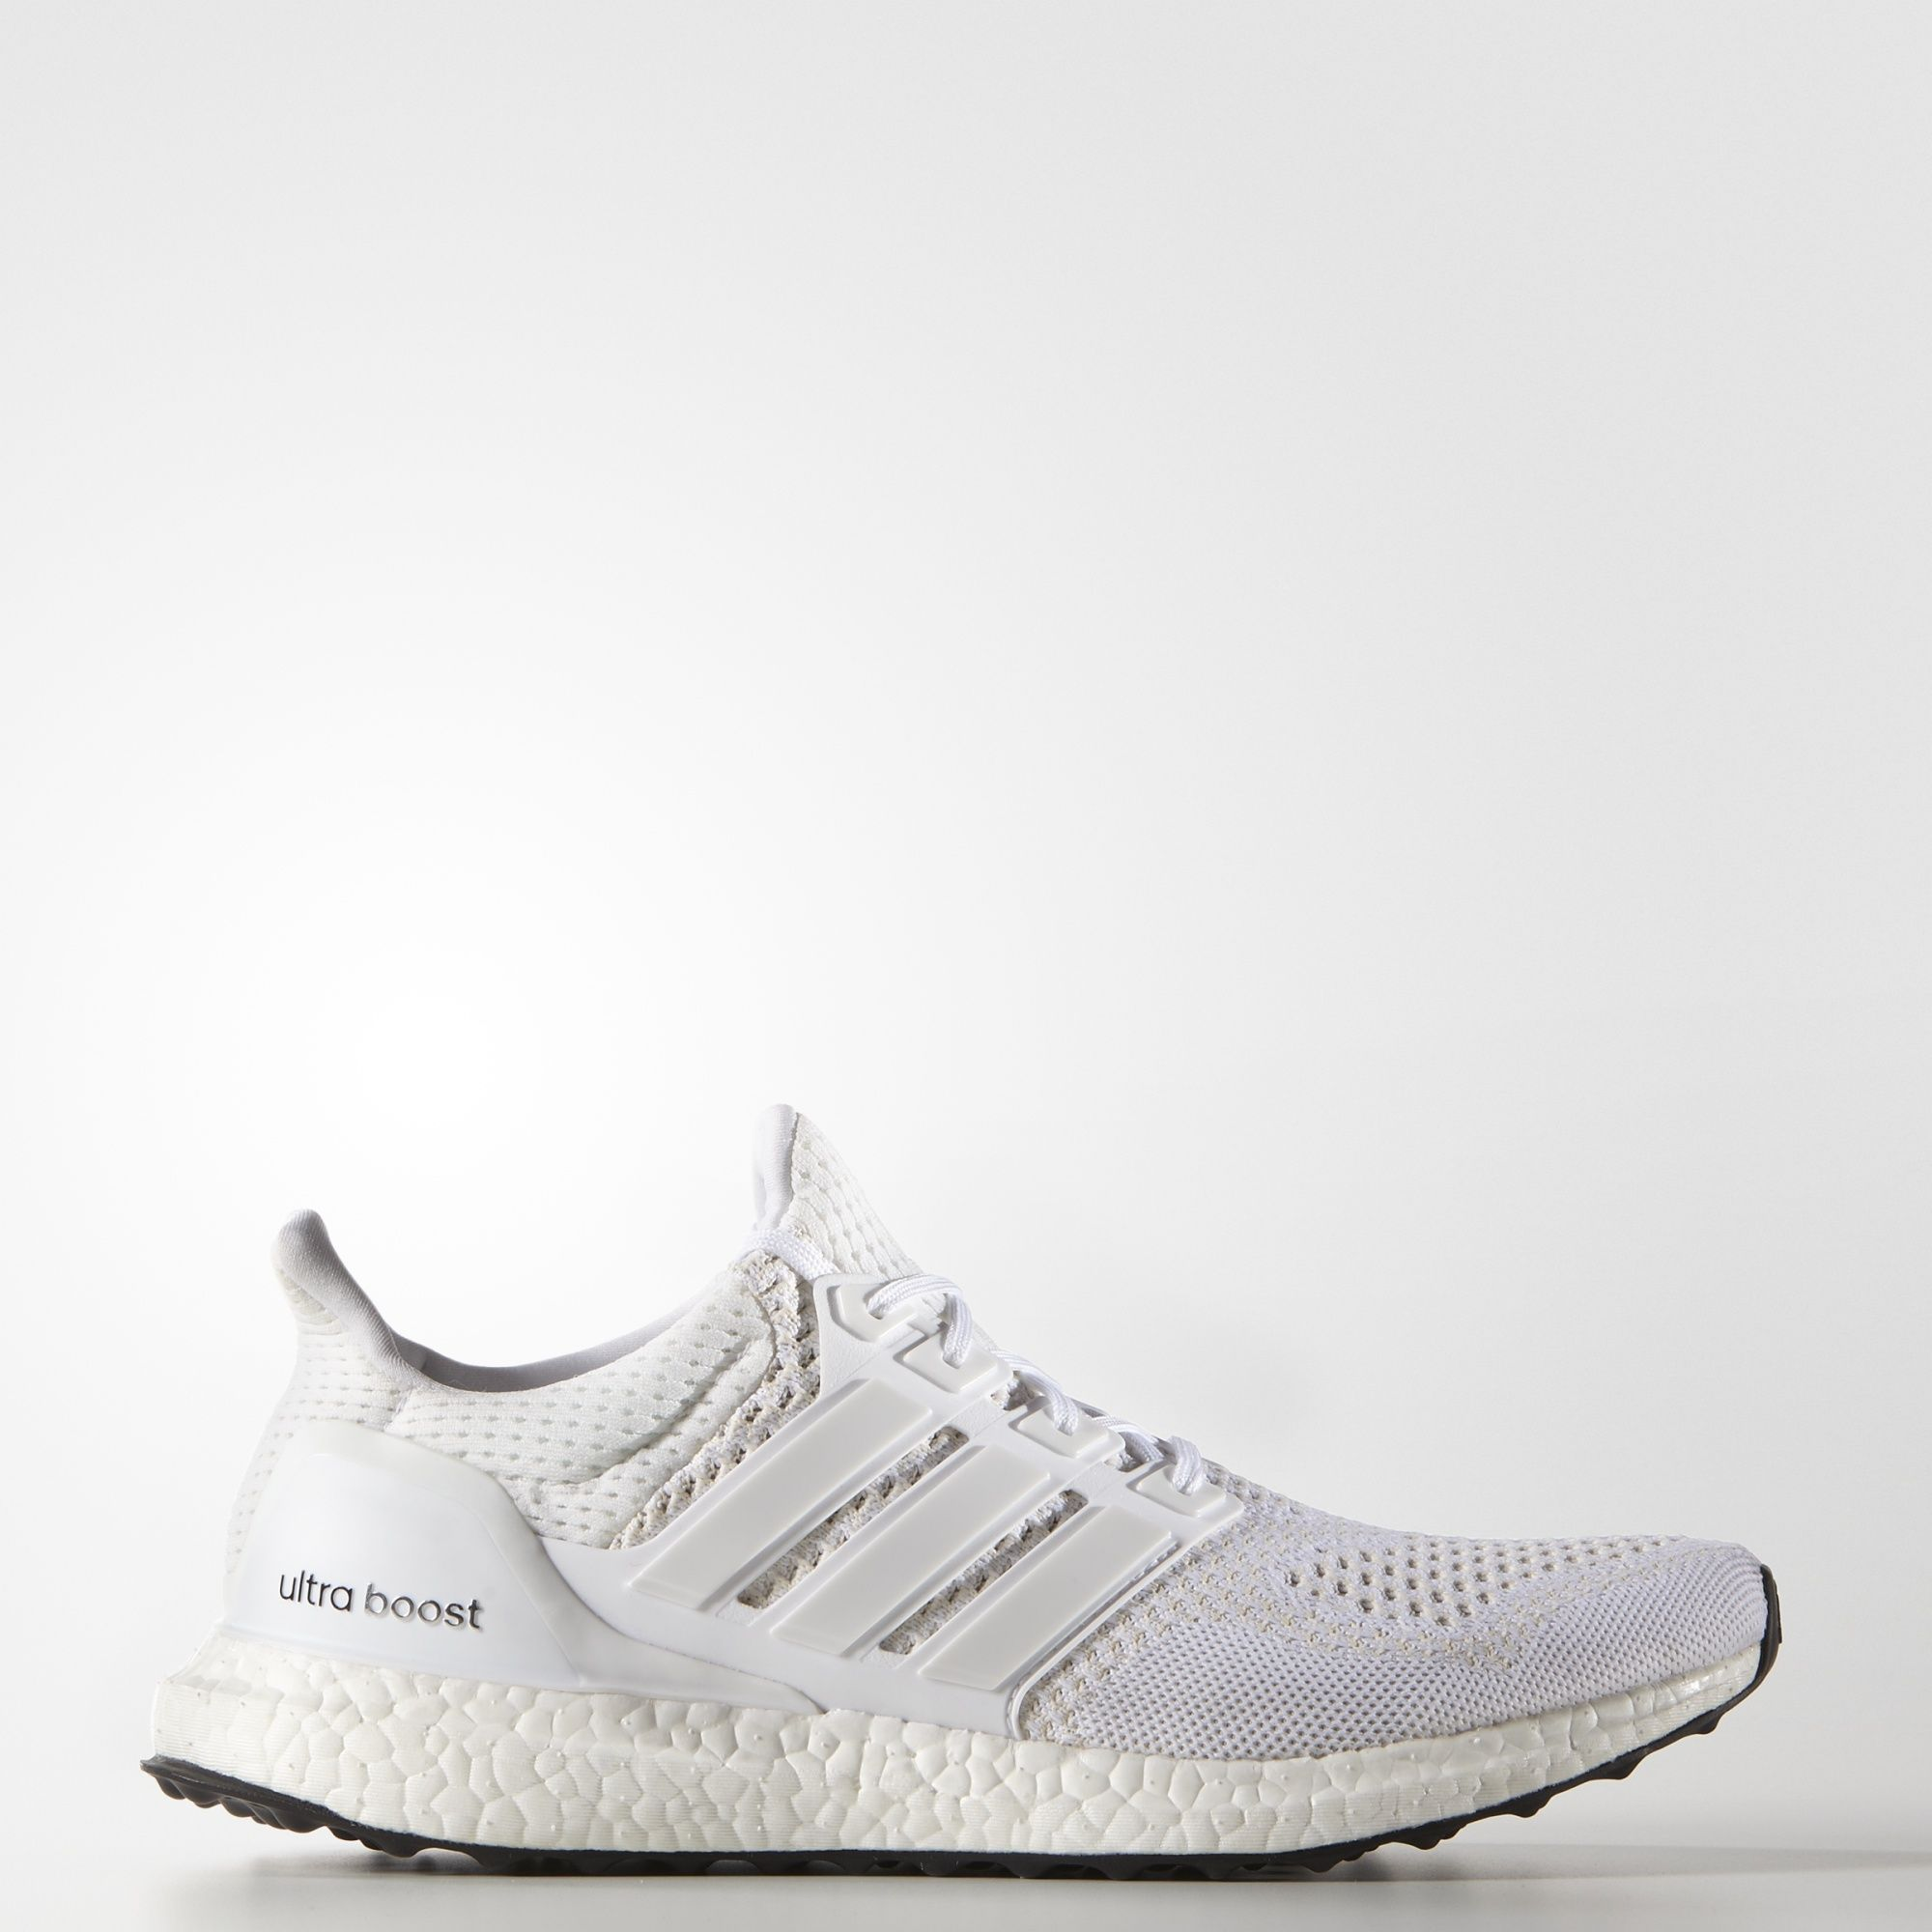 Adidas Ultra Boost 1.0 Vs 2.0